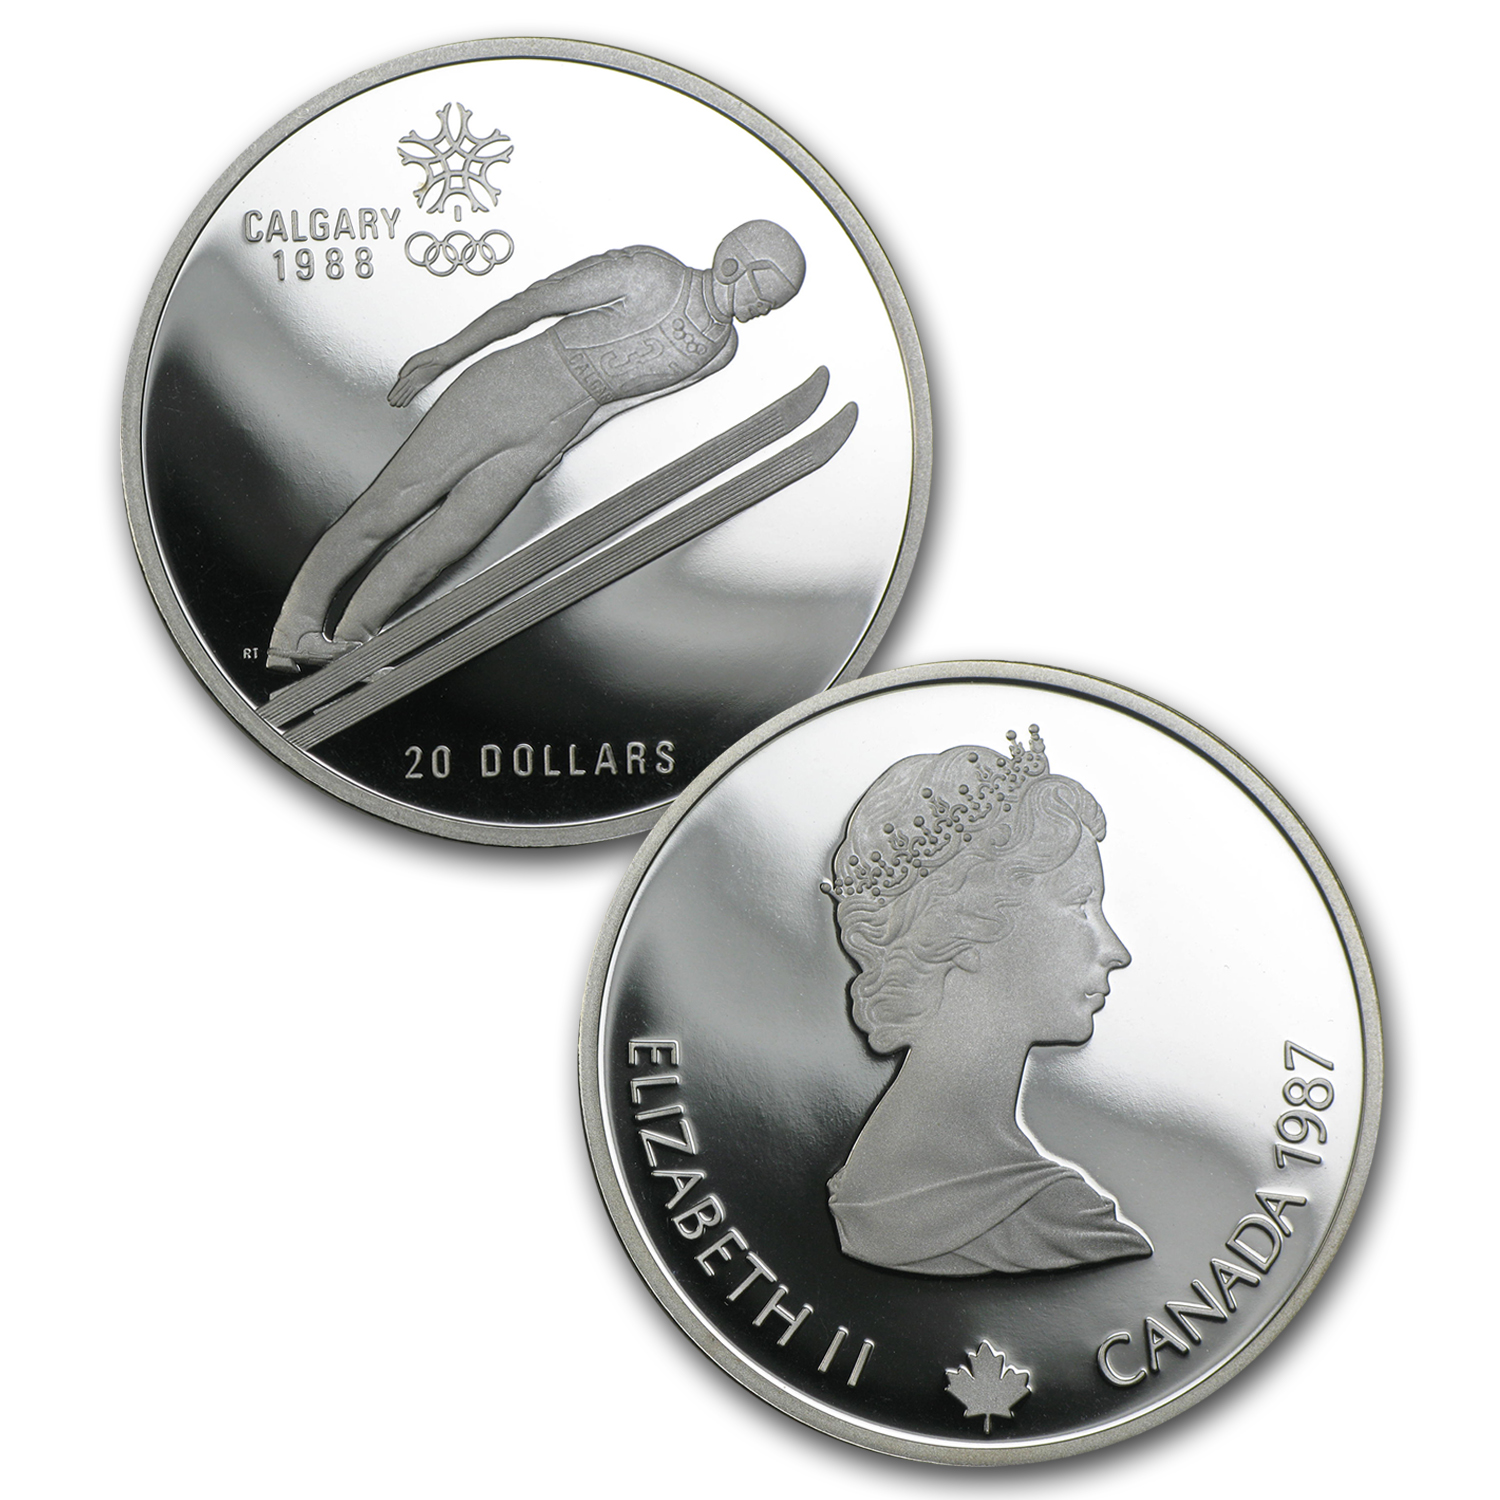 1988 Canada 10-Coin $20 Silver Olympics Commem Proof Set